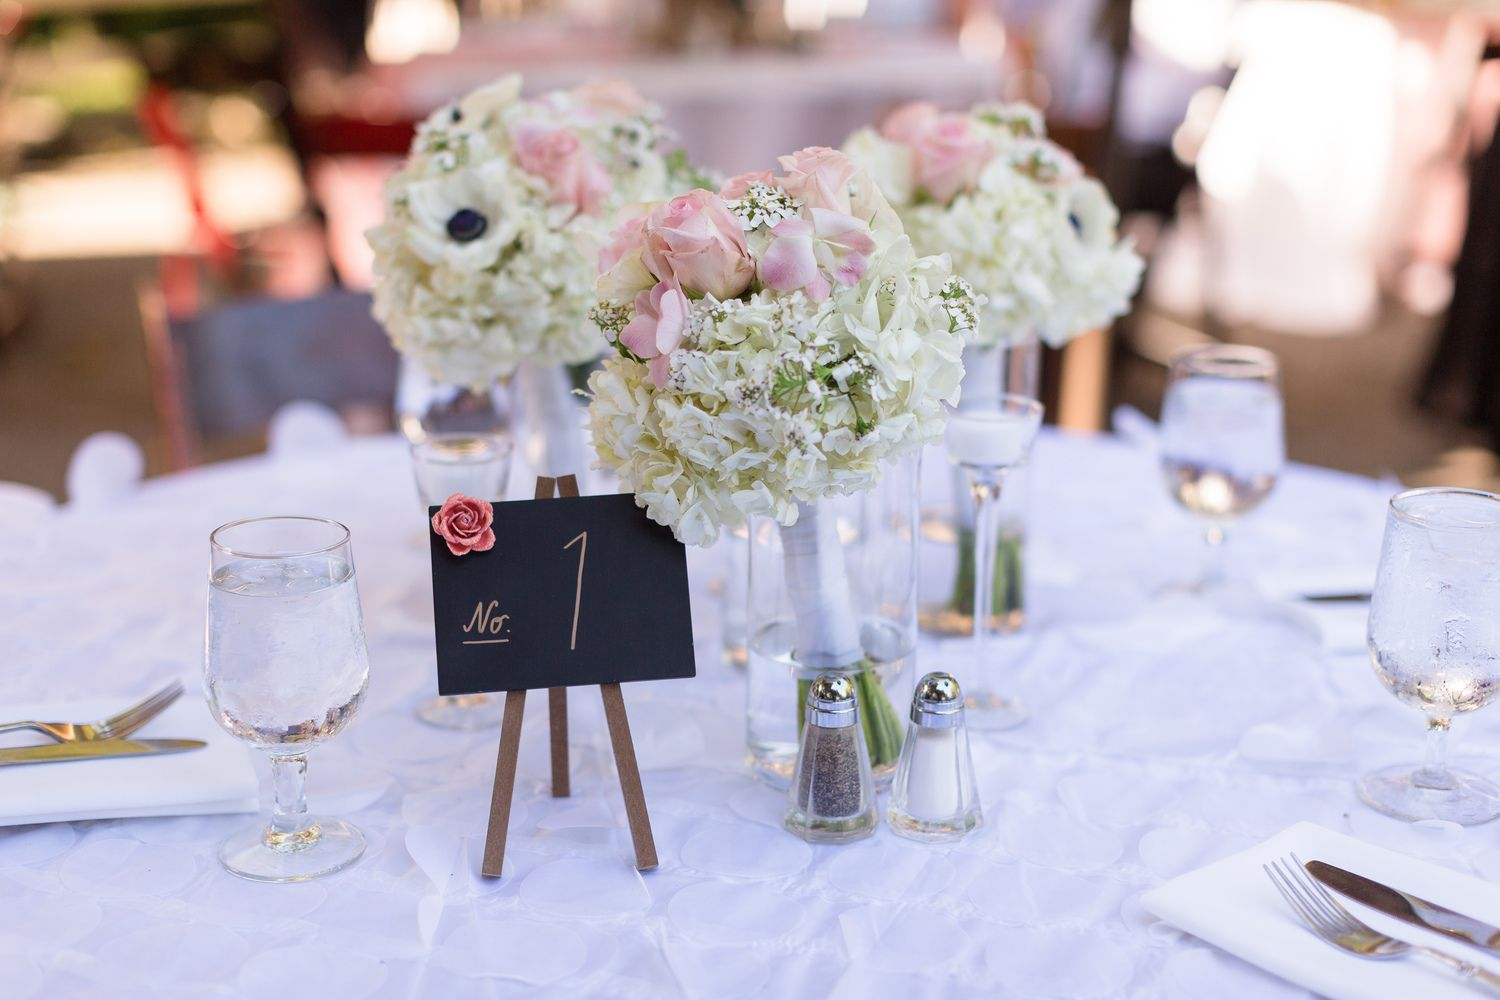 Reception Table Decor Pink and White Flowers | Glen-Ellen-Jack-London-State-Park-Wedding-Photographer-TréCreative